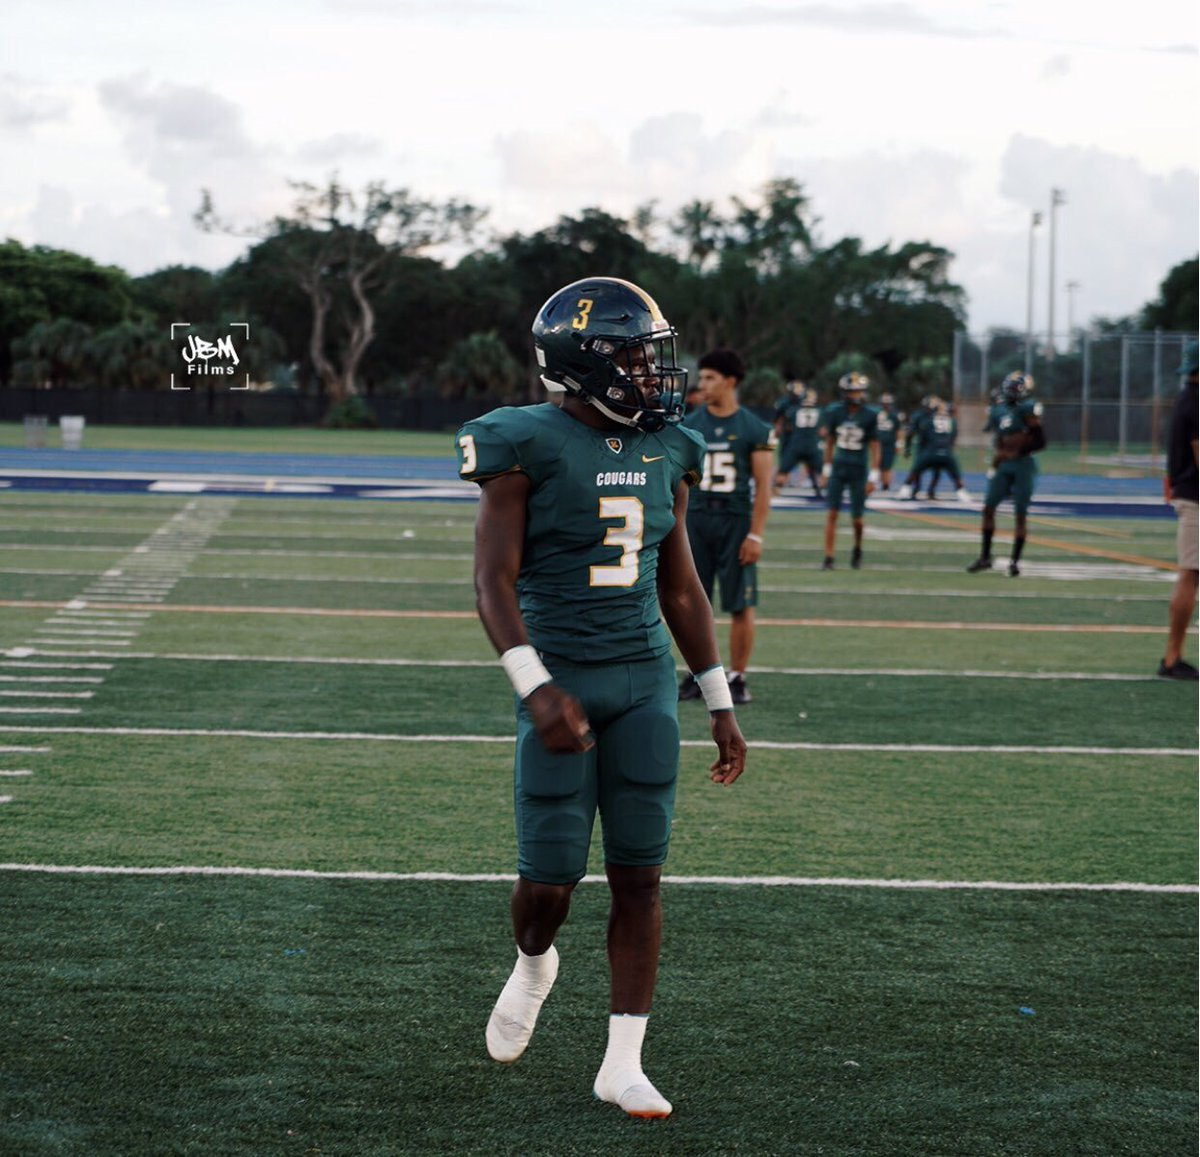 Frank Gore JR 5-8 175 RB Miami Killian High School Miami Fla @stn_2lit Explosive running back from the Mecca of high school talent Miami Fla. Power 5 prospect grade A agility and quickness grad A bloodline this kid is dynamic. 2020 prospect  https://www. hudl.com/video/3/996782 4/5bb37931ff026619b85f3d96 &nbsp; … <br>http://pic.twitter.com/D9hJ5WVIS8